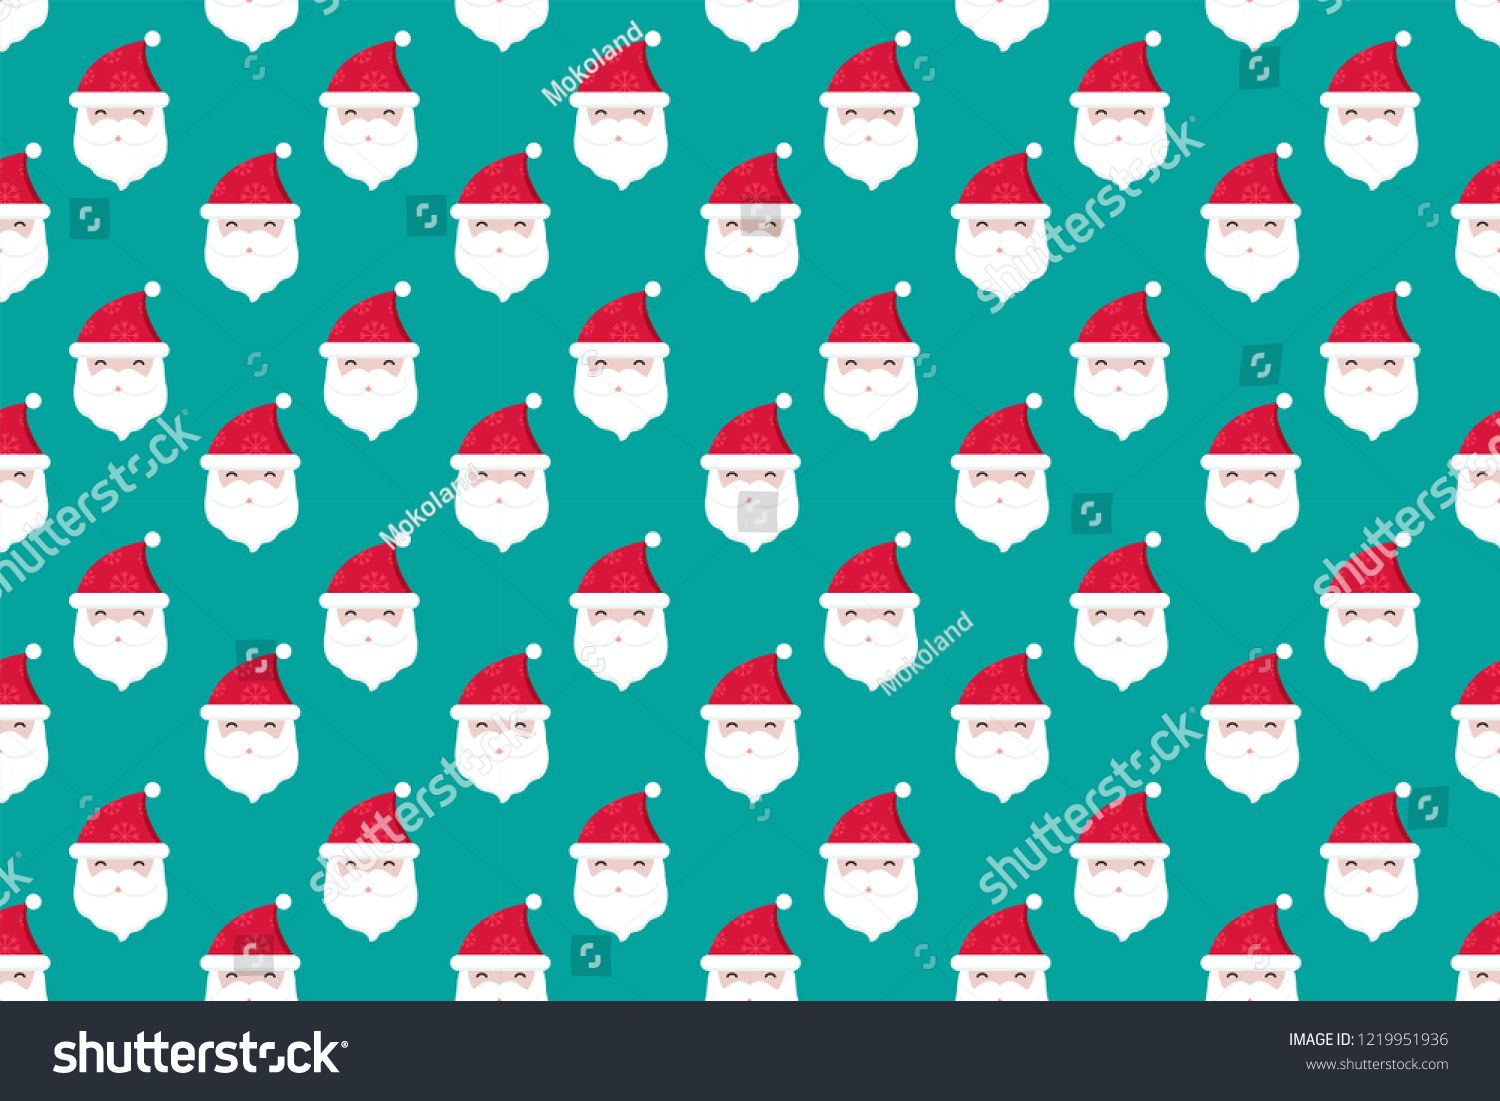 Merry Christmas Pattern Seamless Collection Santa Claus